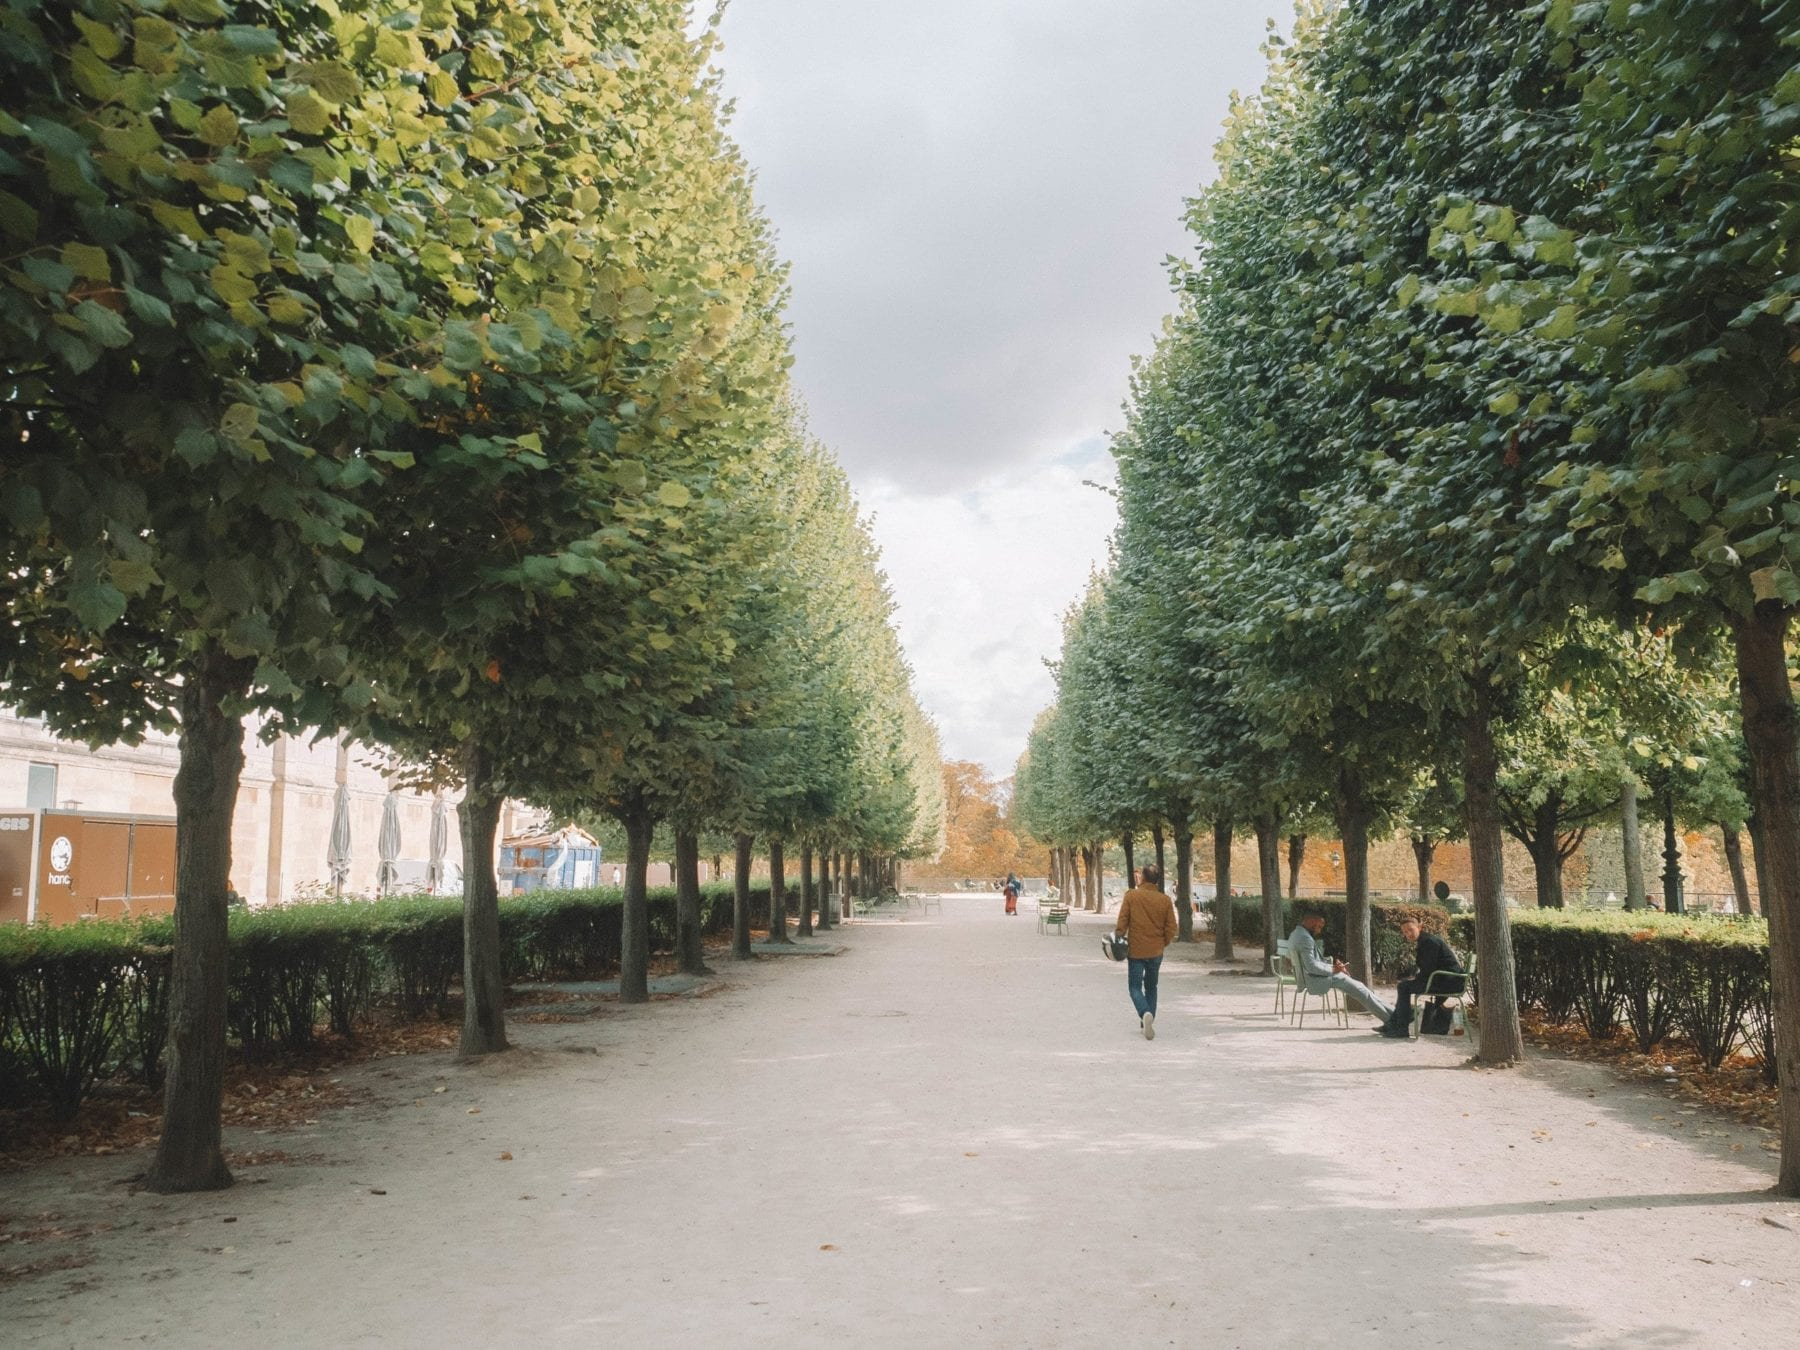 Tuileries Garden in Paris France